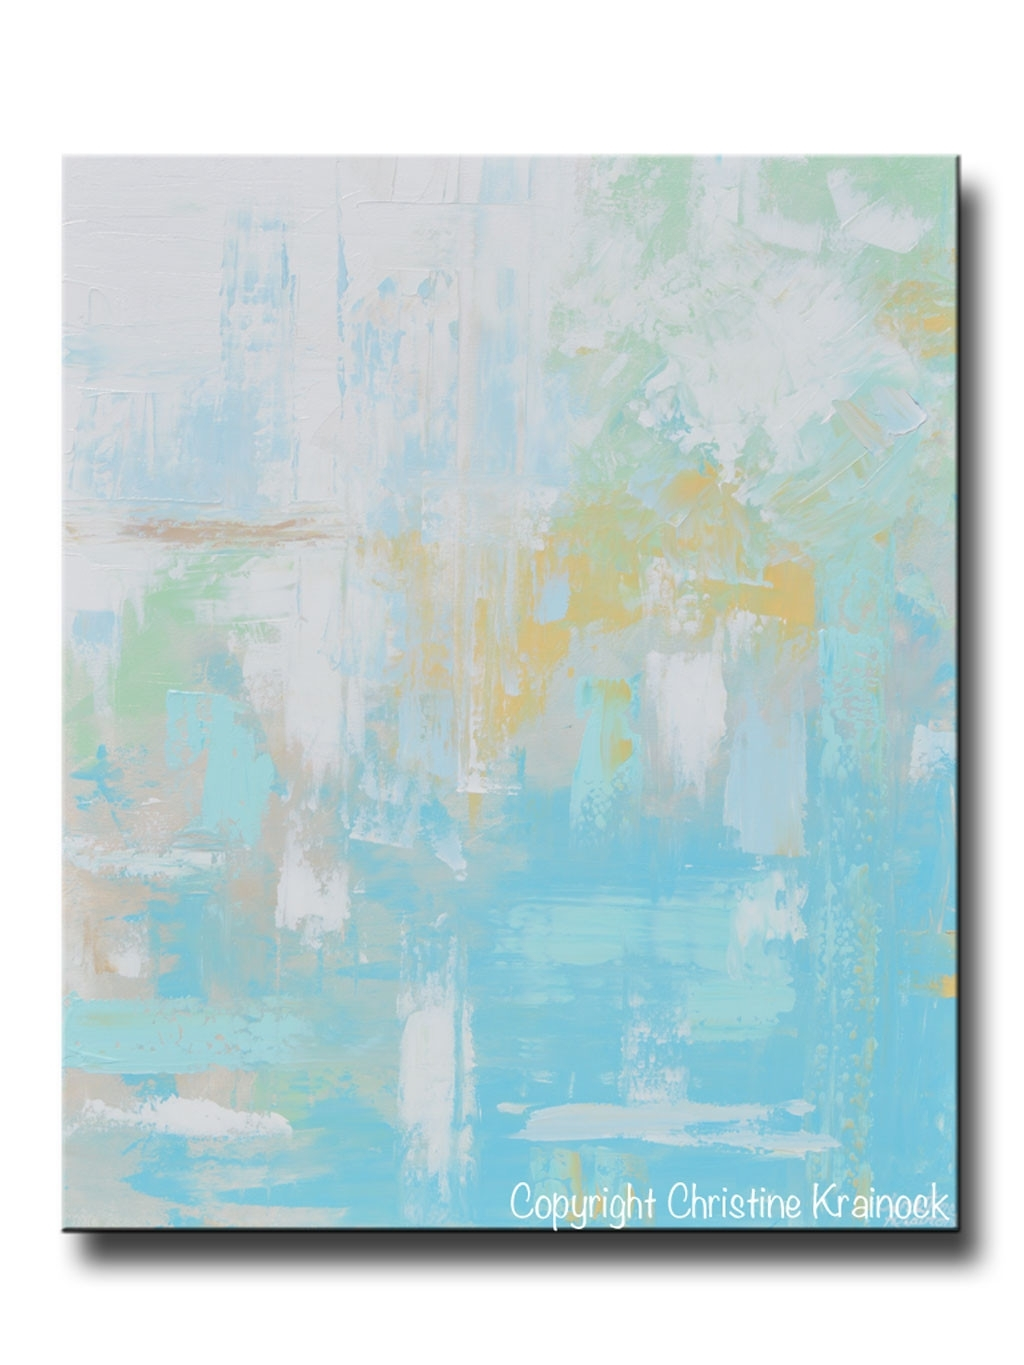 Original Art Light Blue Abstract Painting Aqua Blue Green Yellow Pertaining To Most Recently Released Blue Abstract Wall Art (View 14 of 20)